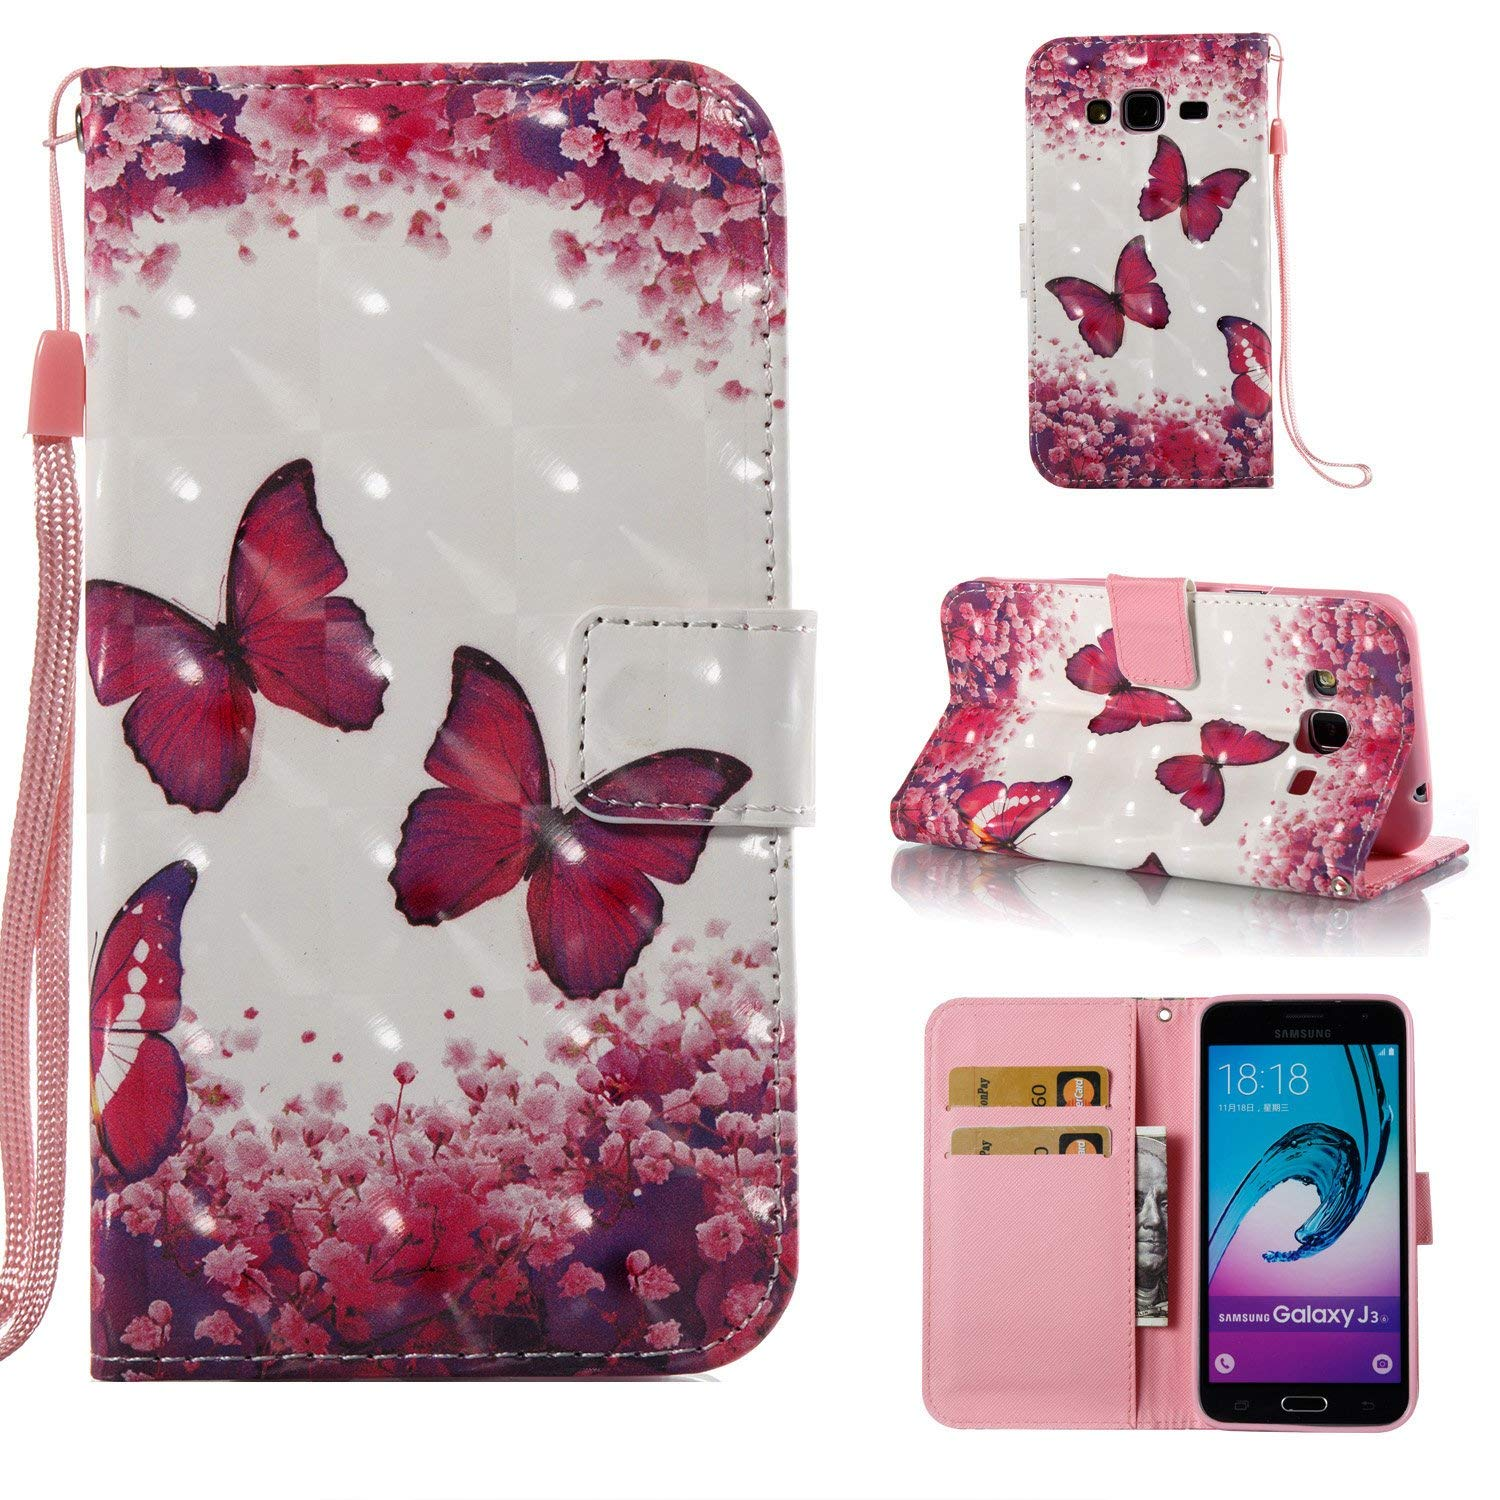 StarCity Case For Galaxy J3 (2016) / Galaxy J3, PU Leather Folio Flip Cover Wallet Case For Samsung Galaxy J3 (2016) (Butterfly Rose)